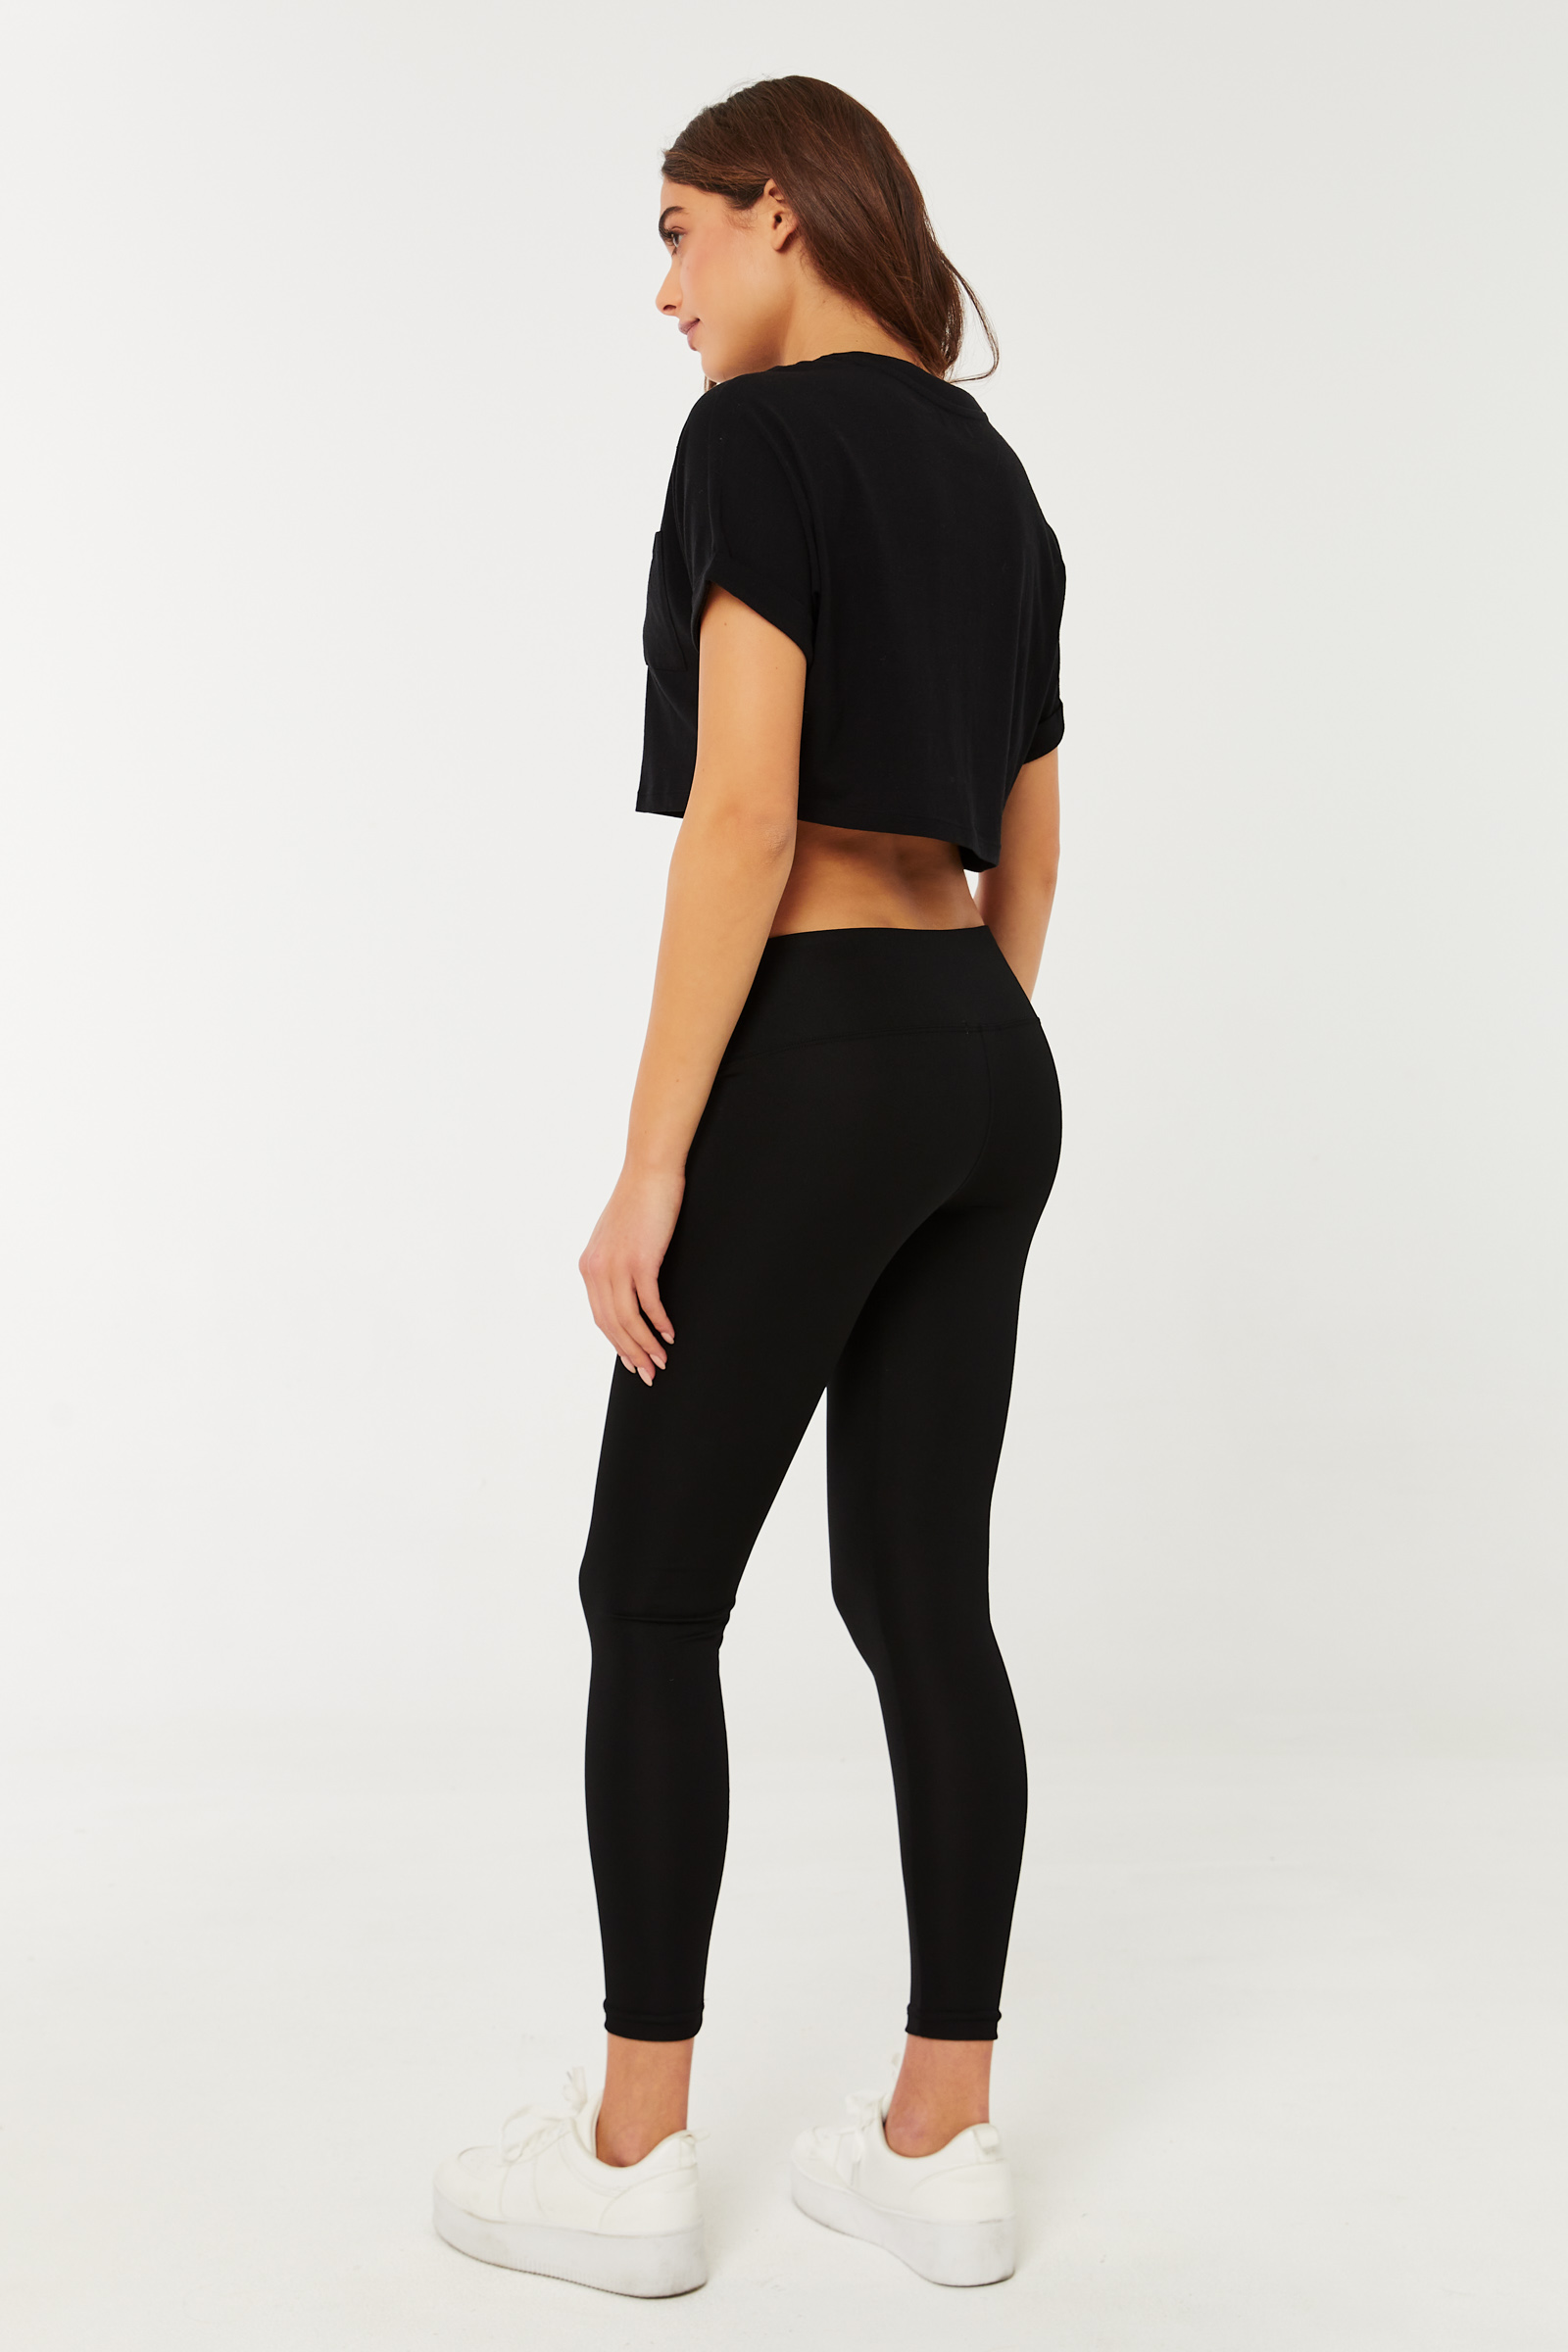 Super Soft Leggings with Front tie